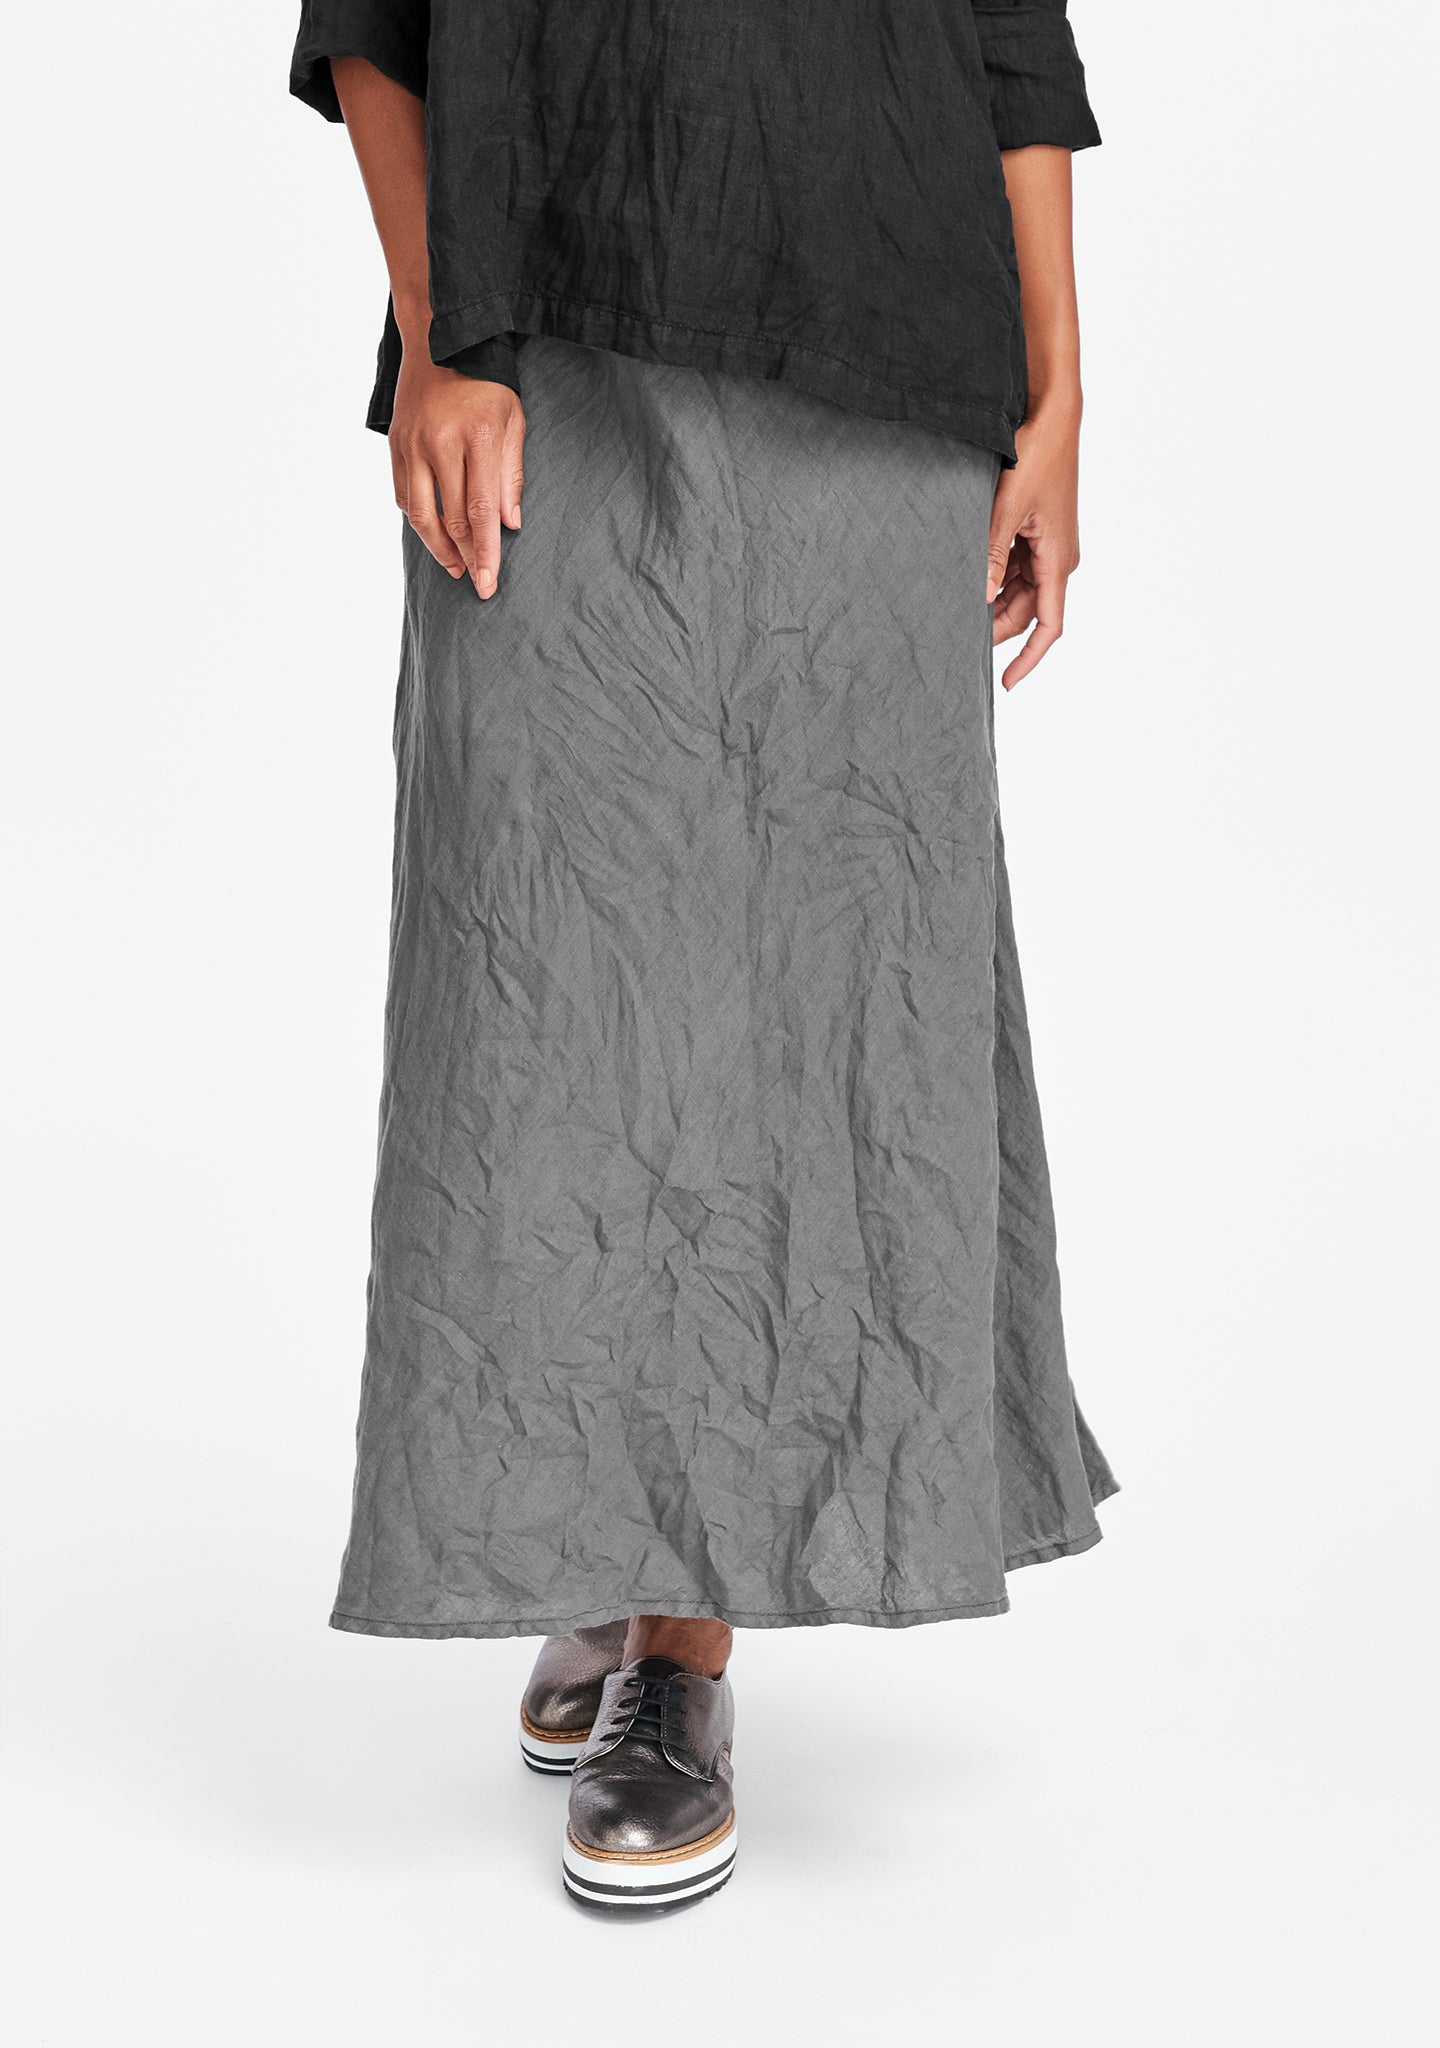 live in skirt linen maxi skirt grey